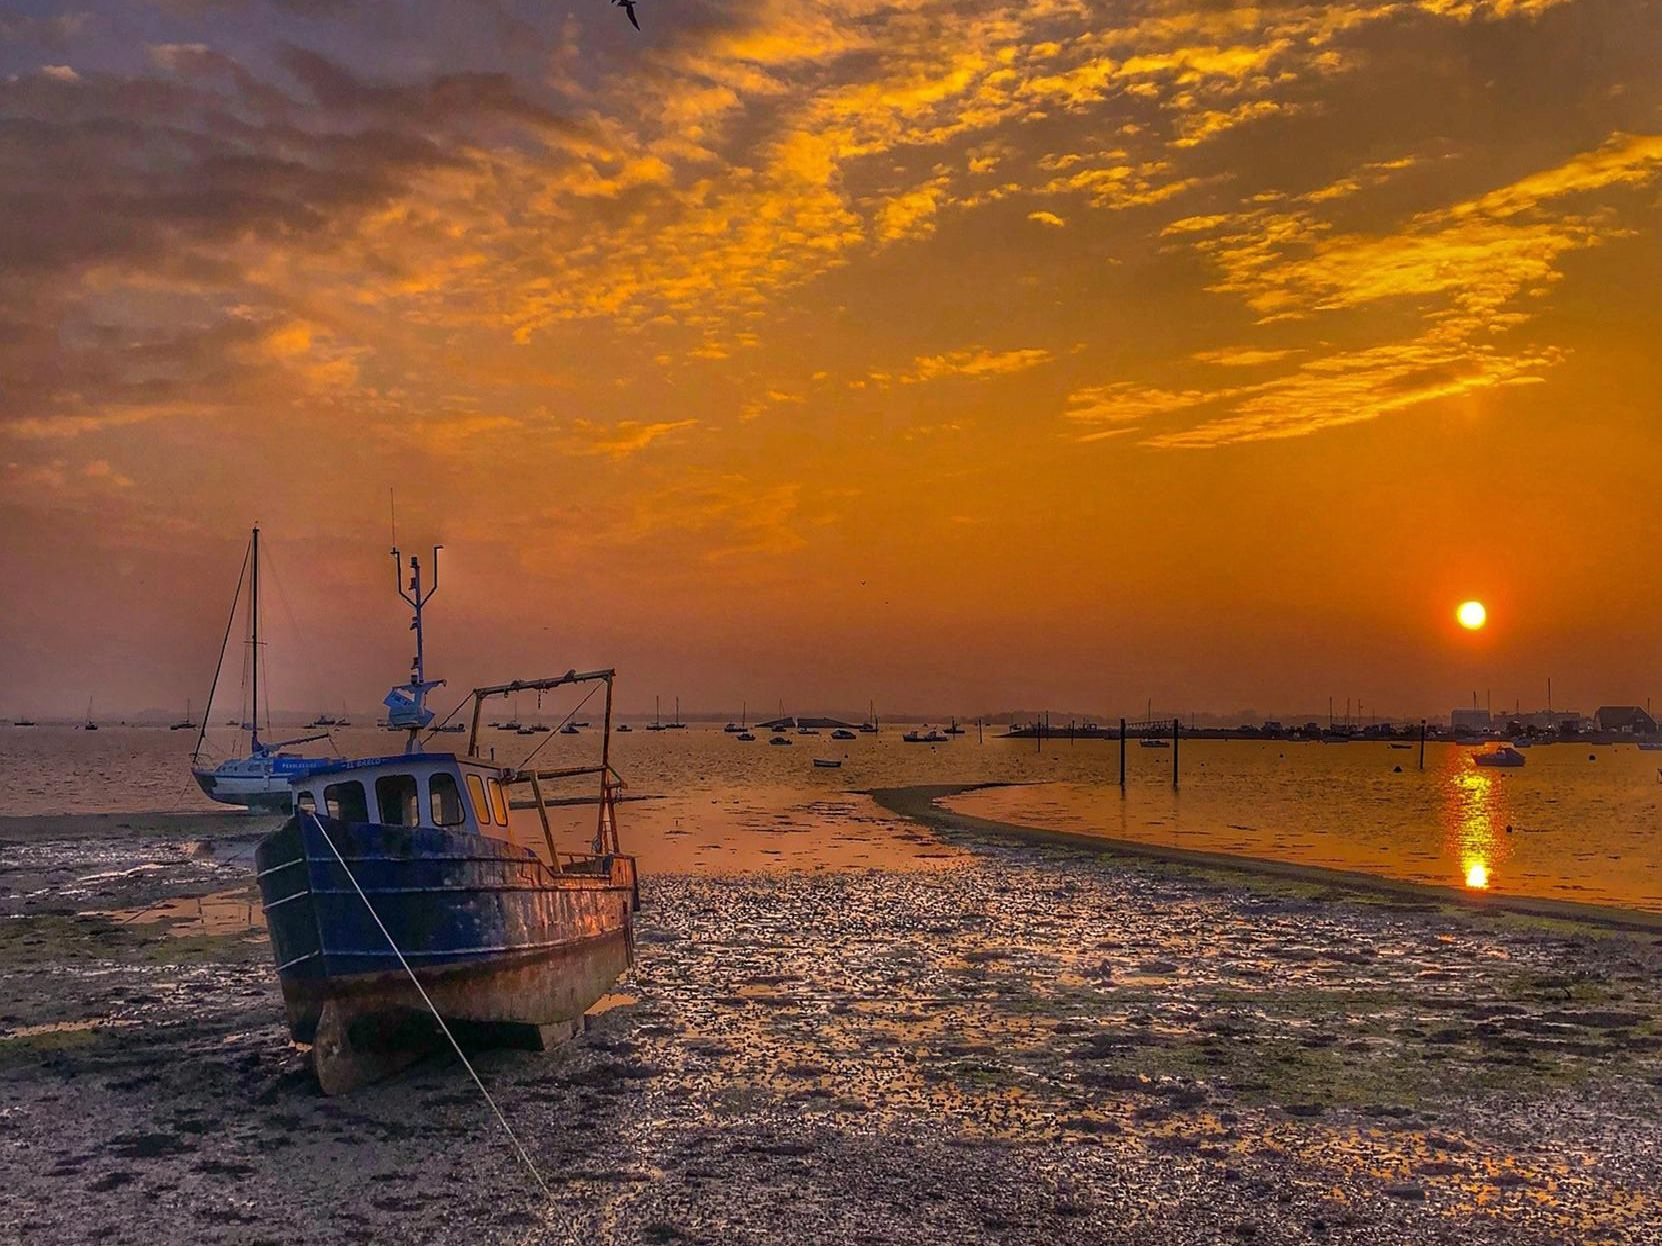 Stunning sunset at Eastney Beach by Neil Harris.